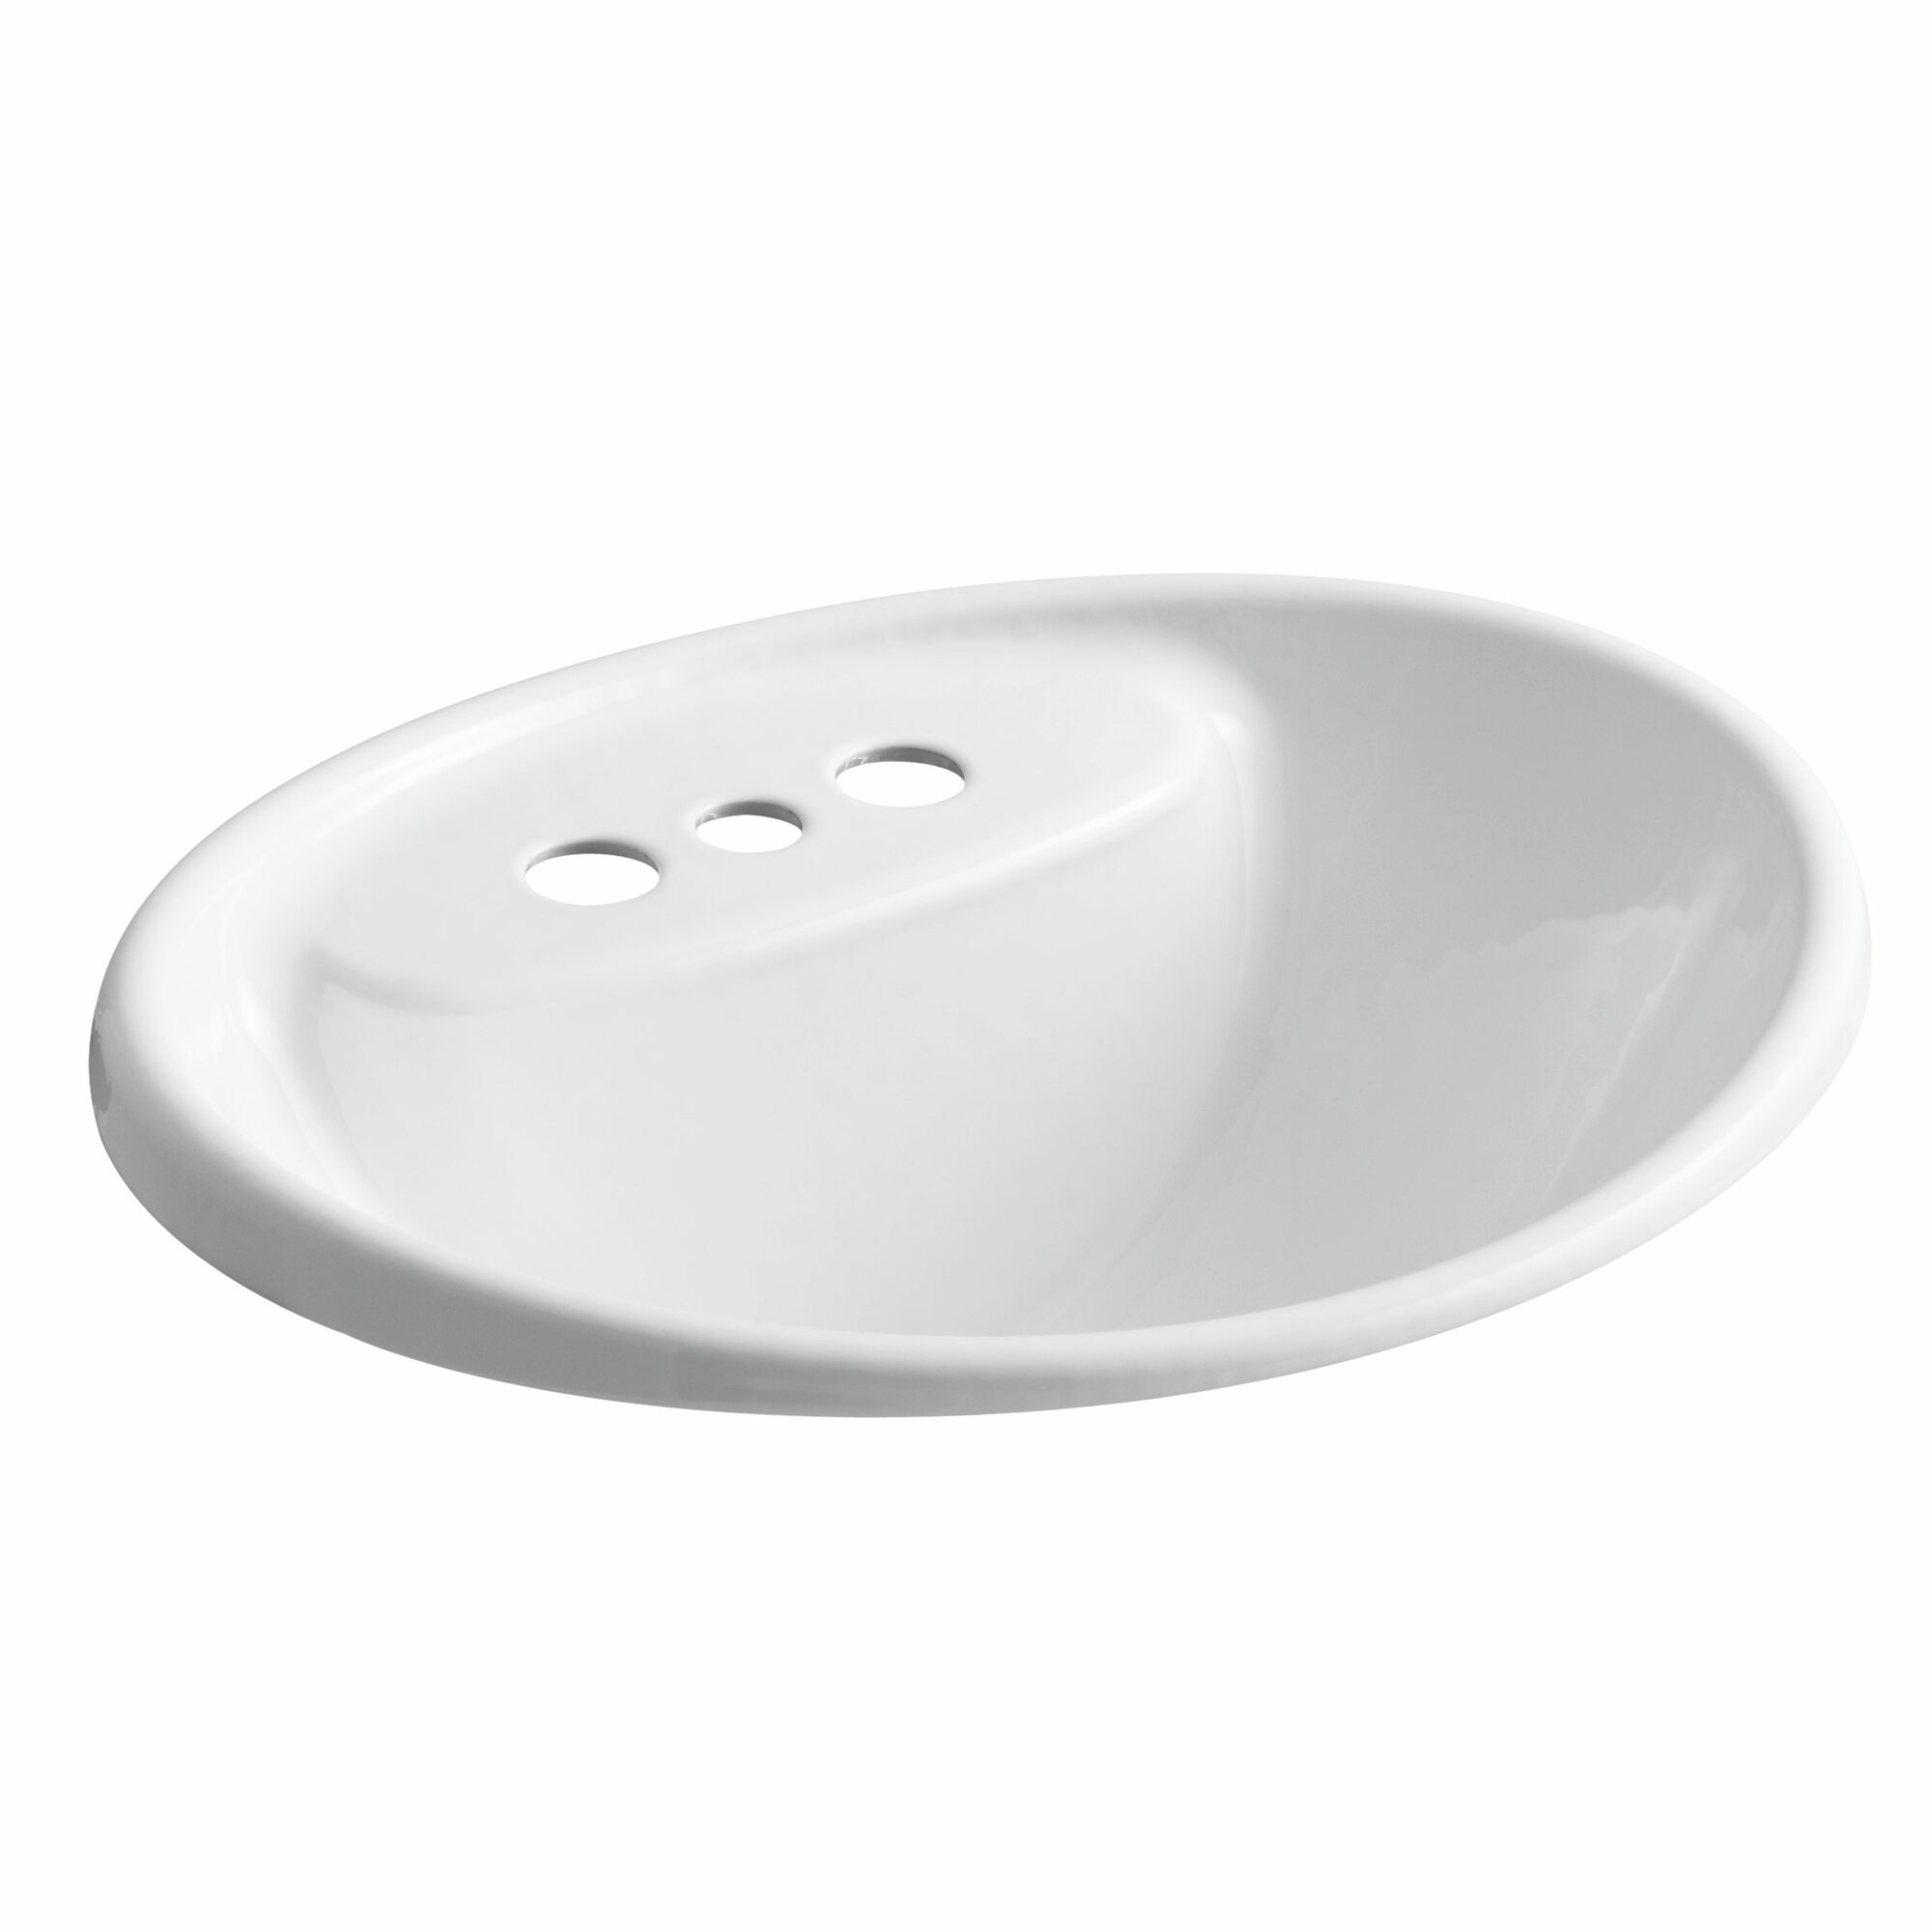 Kohler Drop In Bathroom Sink : Details about Kohler Tides Drop-In Bathroom Sink with 4